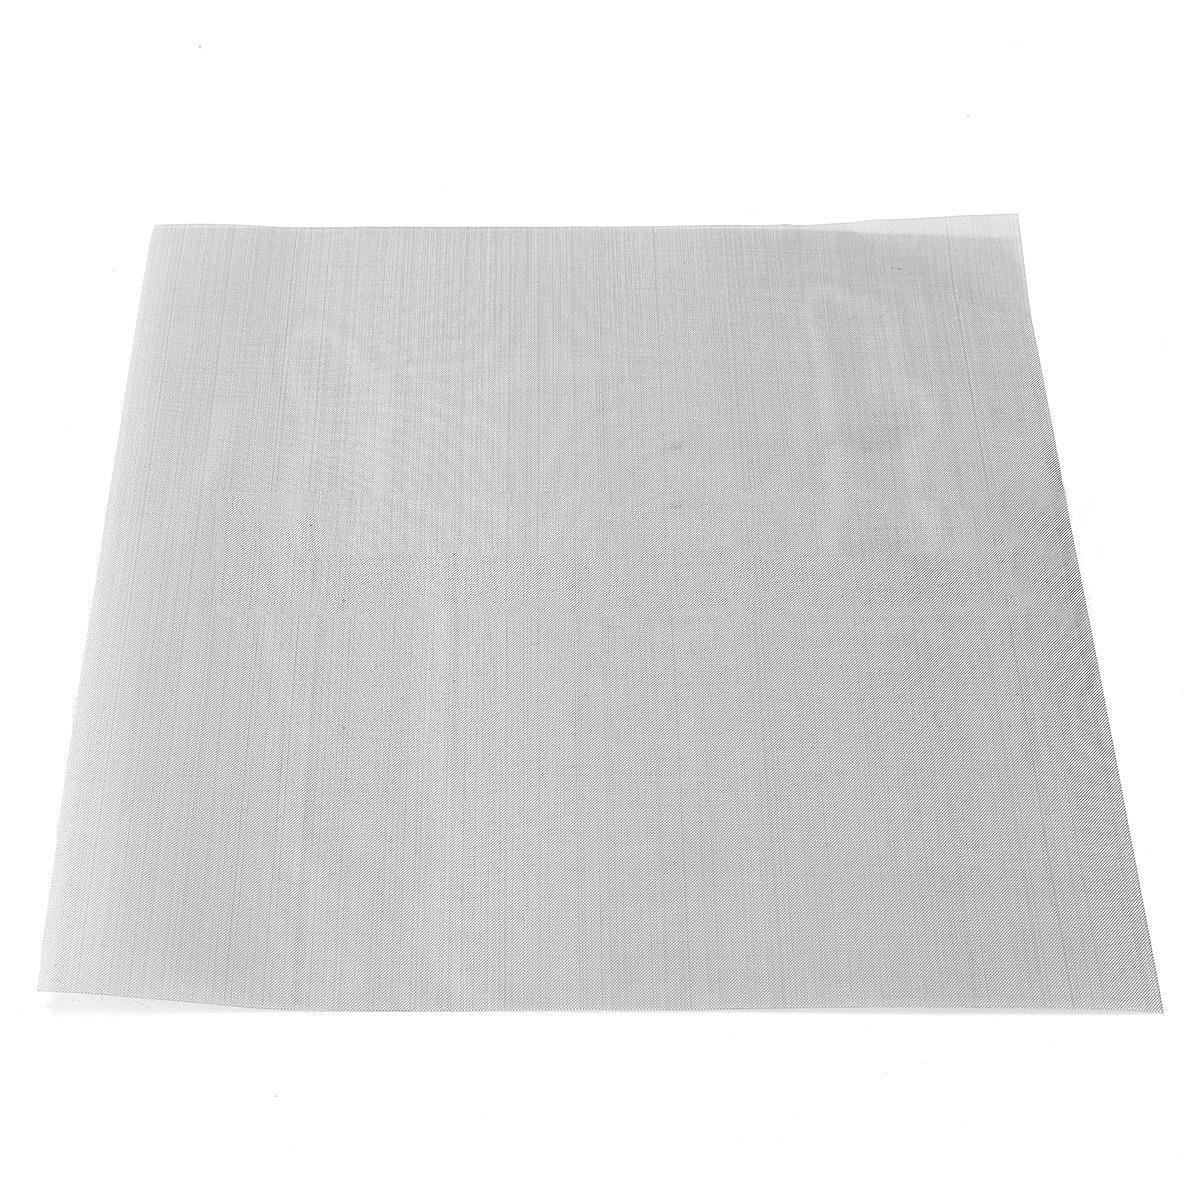 1pc Non-toxic 304 Stainless Steel Woven Wire 60 Mesh Filtration Cloth Screen 30x30cm For Cooking Nets 1pc stainless steel woven wire mesh 60 industrial filtration cloth screen 30x30cm with weather resistance